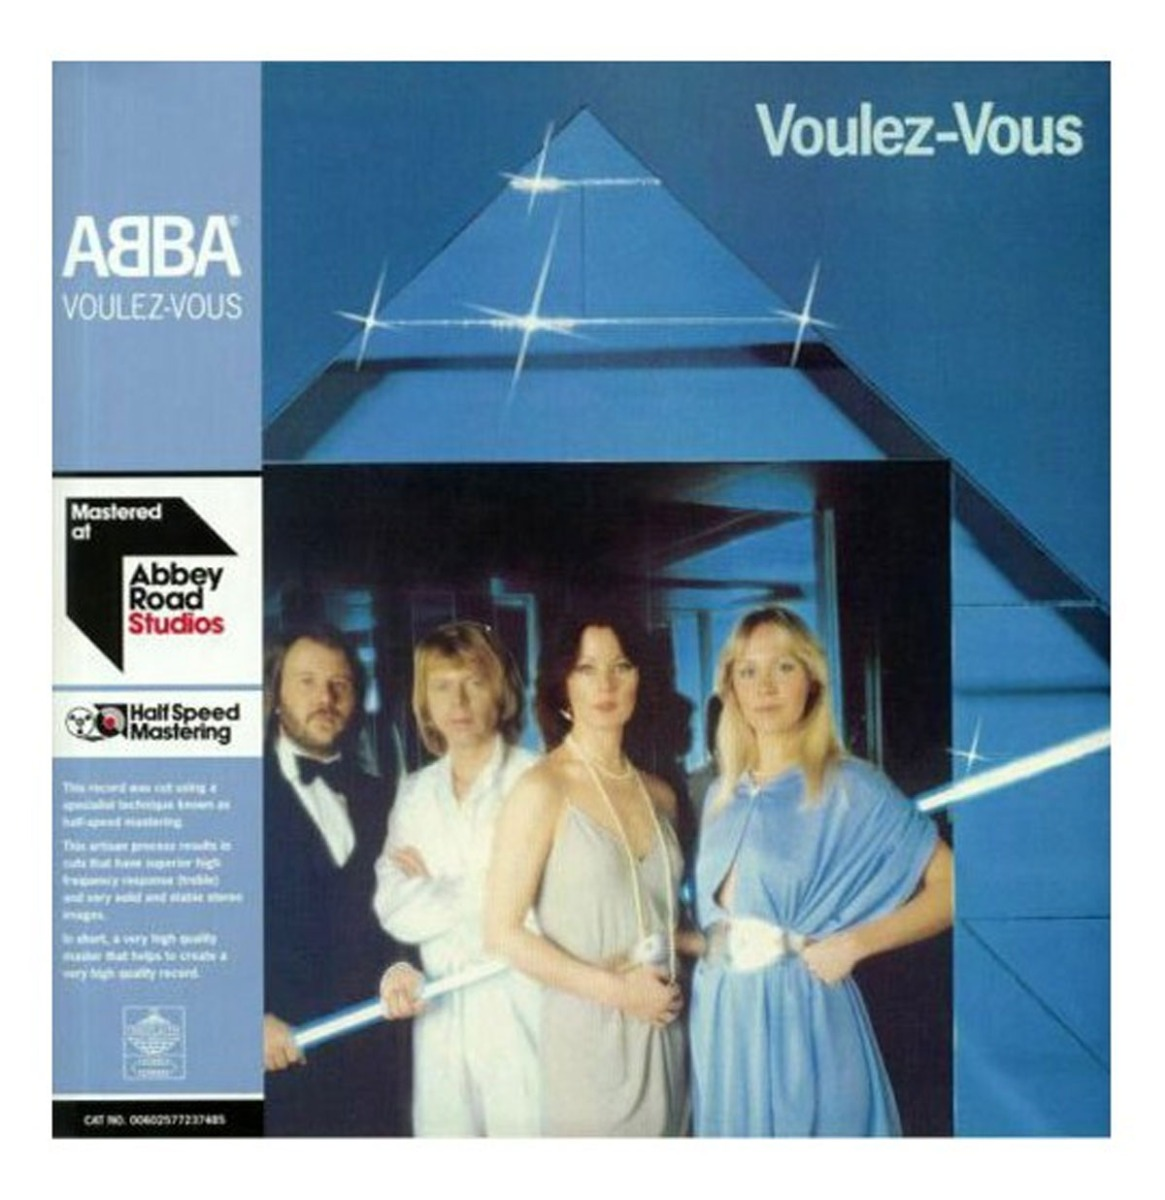 ABBA - Voulez-Vous 2-LP - Mastered At Abbey Road Studios - Limited Edition